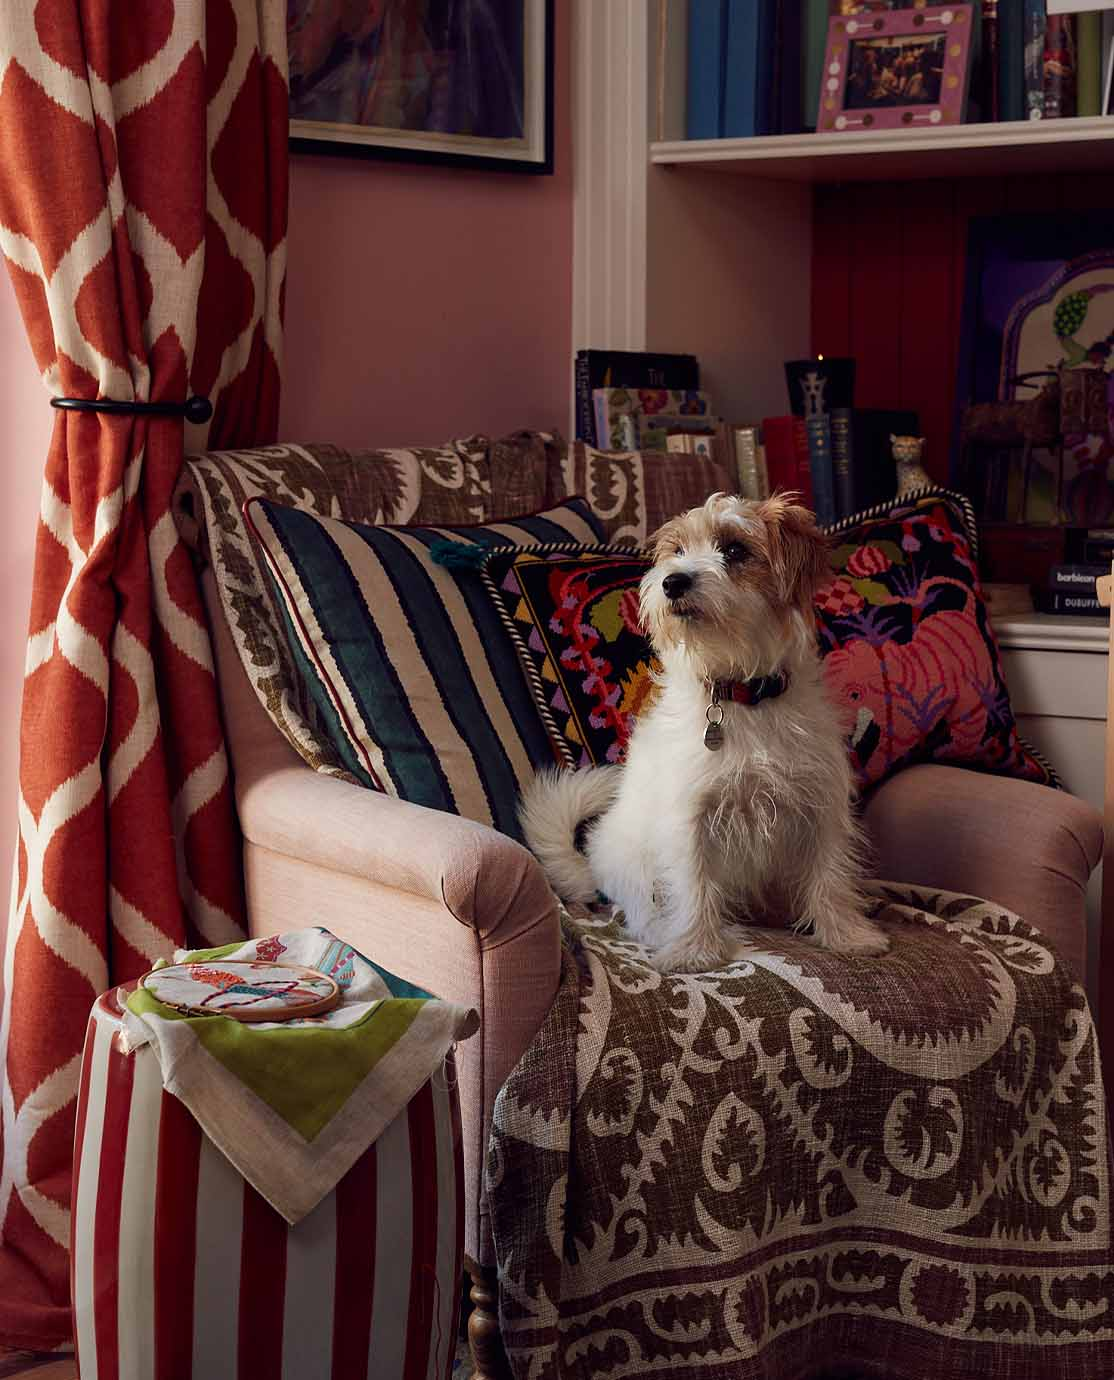 Eppie Thompson's dog sat on a armchair covered in printed blankets and cushions